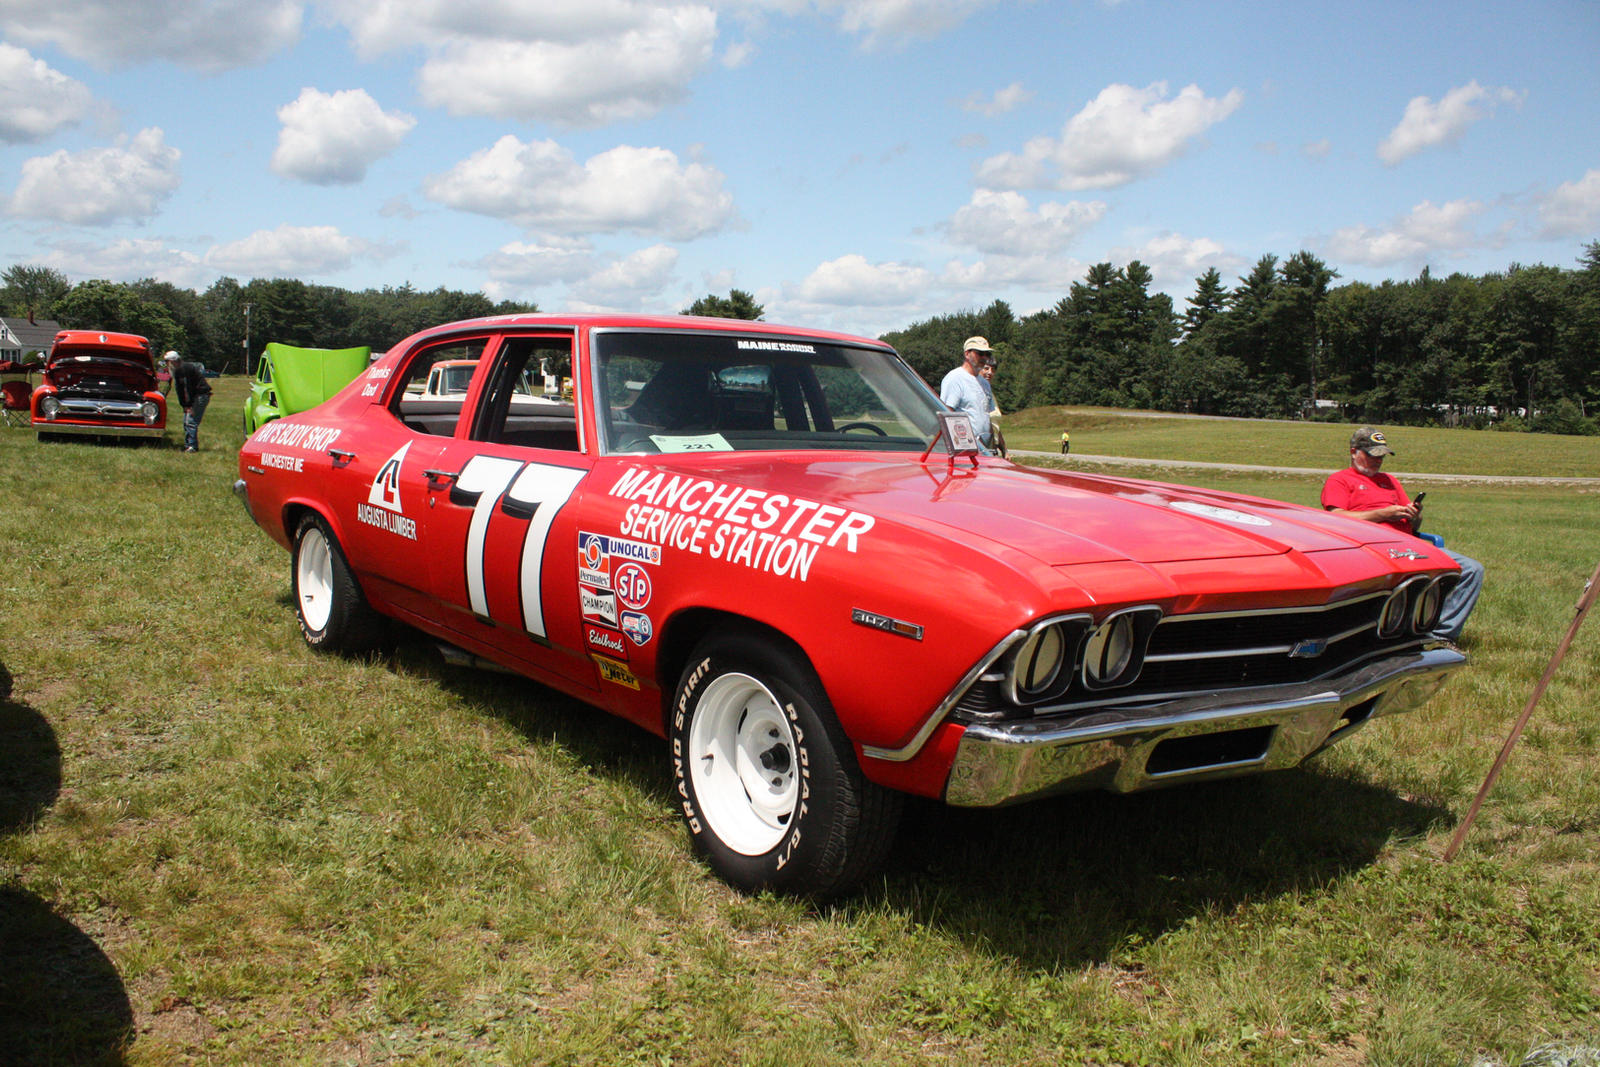 chevelle race car by MrHonda on DeviantArt